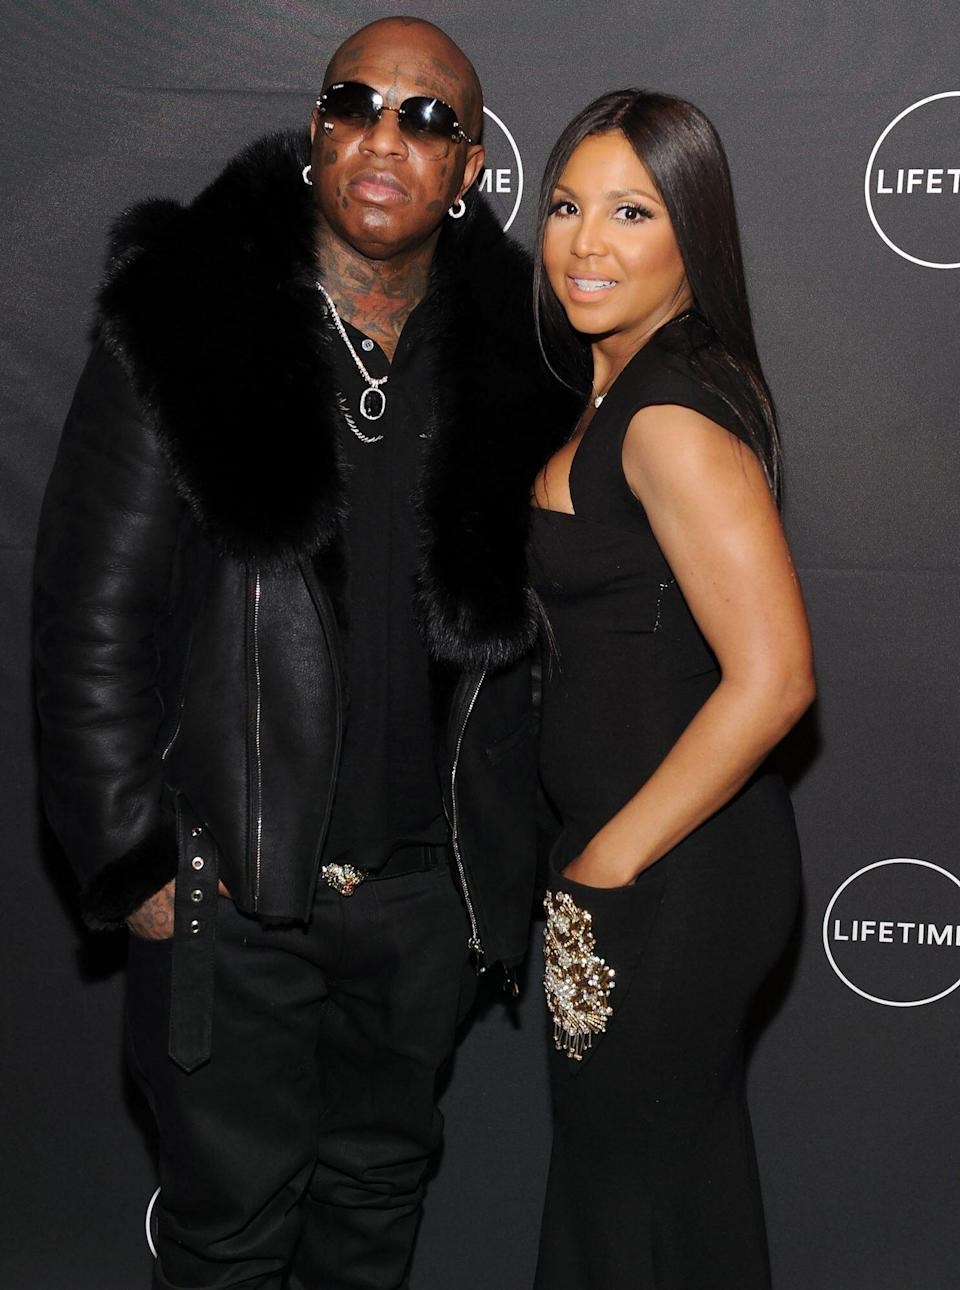 """The Cast And Producers From Lifetime""""s Film,""""Faith Under Fire: The Antoinette Tuff Story"""" Attend The Red Carpet Screening And Premiere Event At NeueHouse Madison Square In New York, NY"""